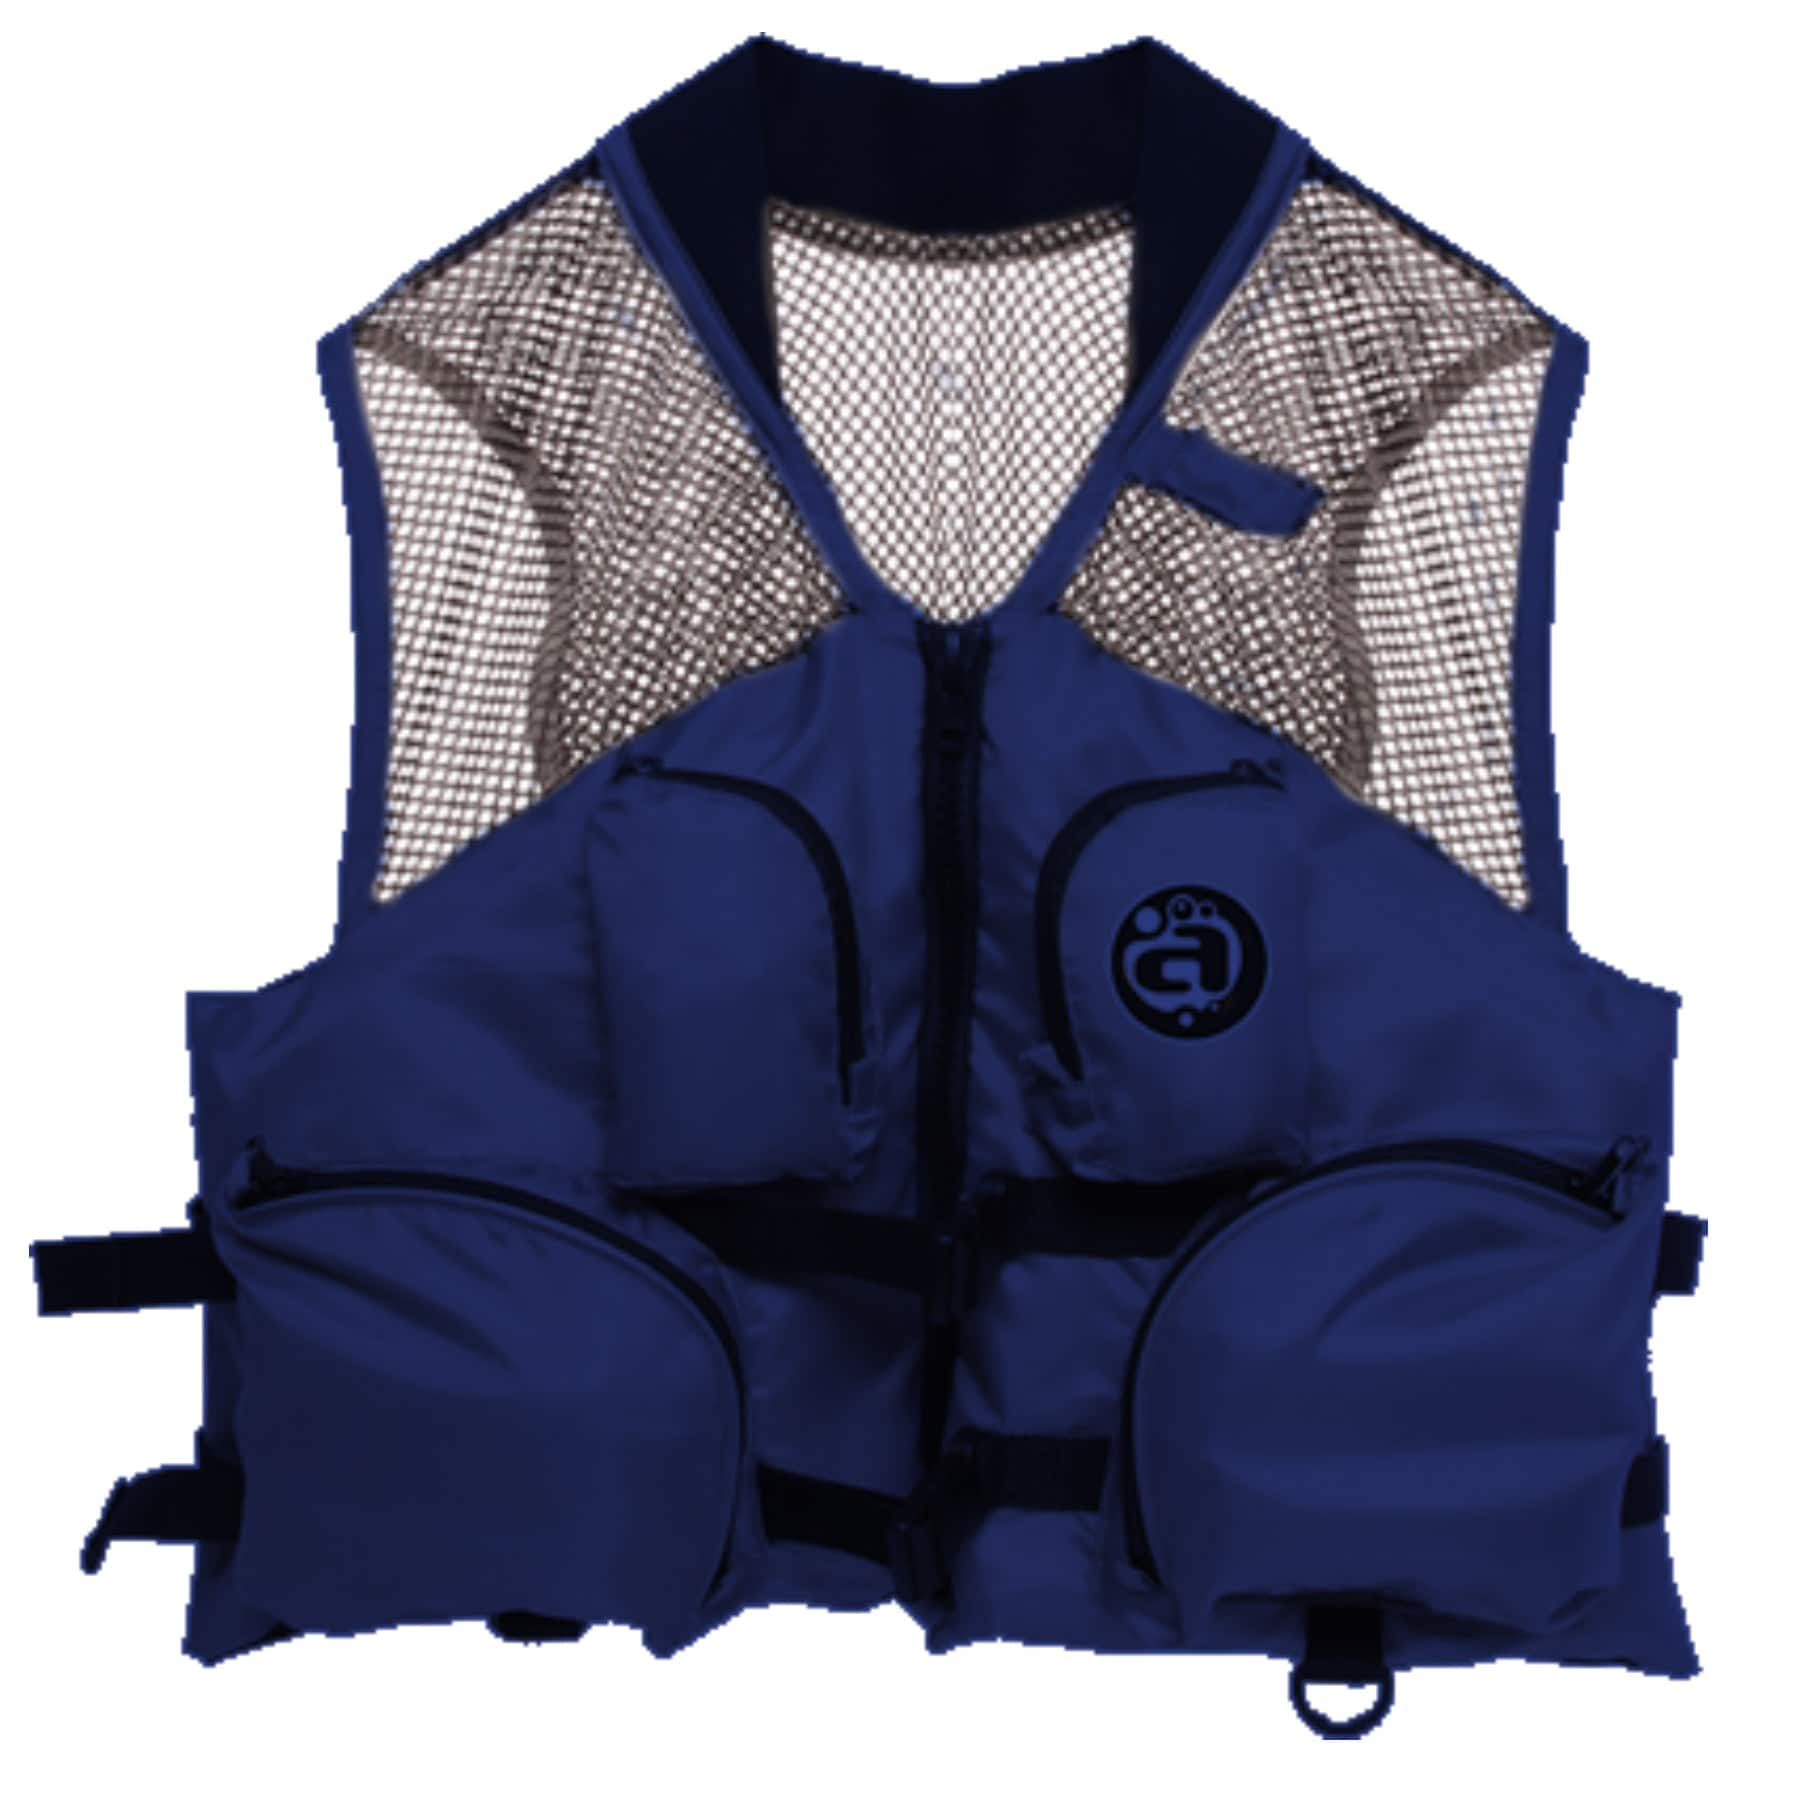 Airhead Blue Nylon Small Medium Deluxe Mesh Top Fishing Vest by Overstock